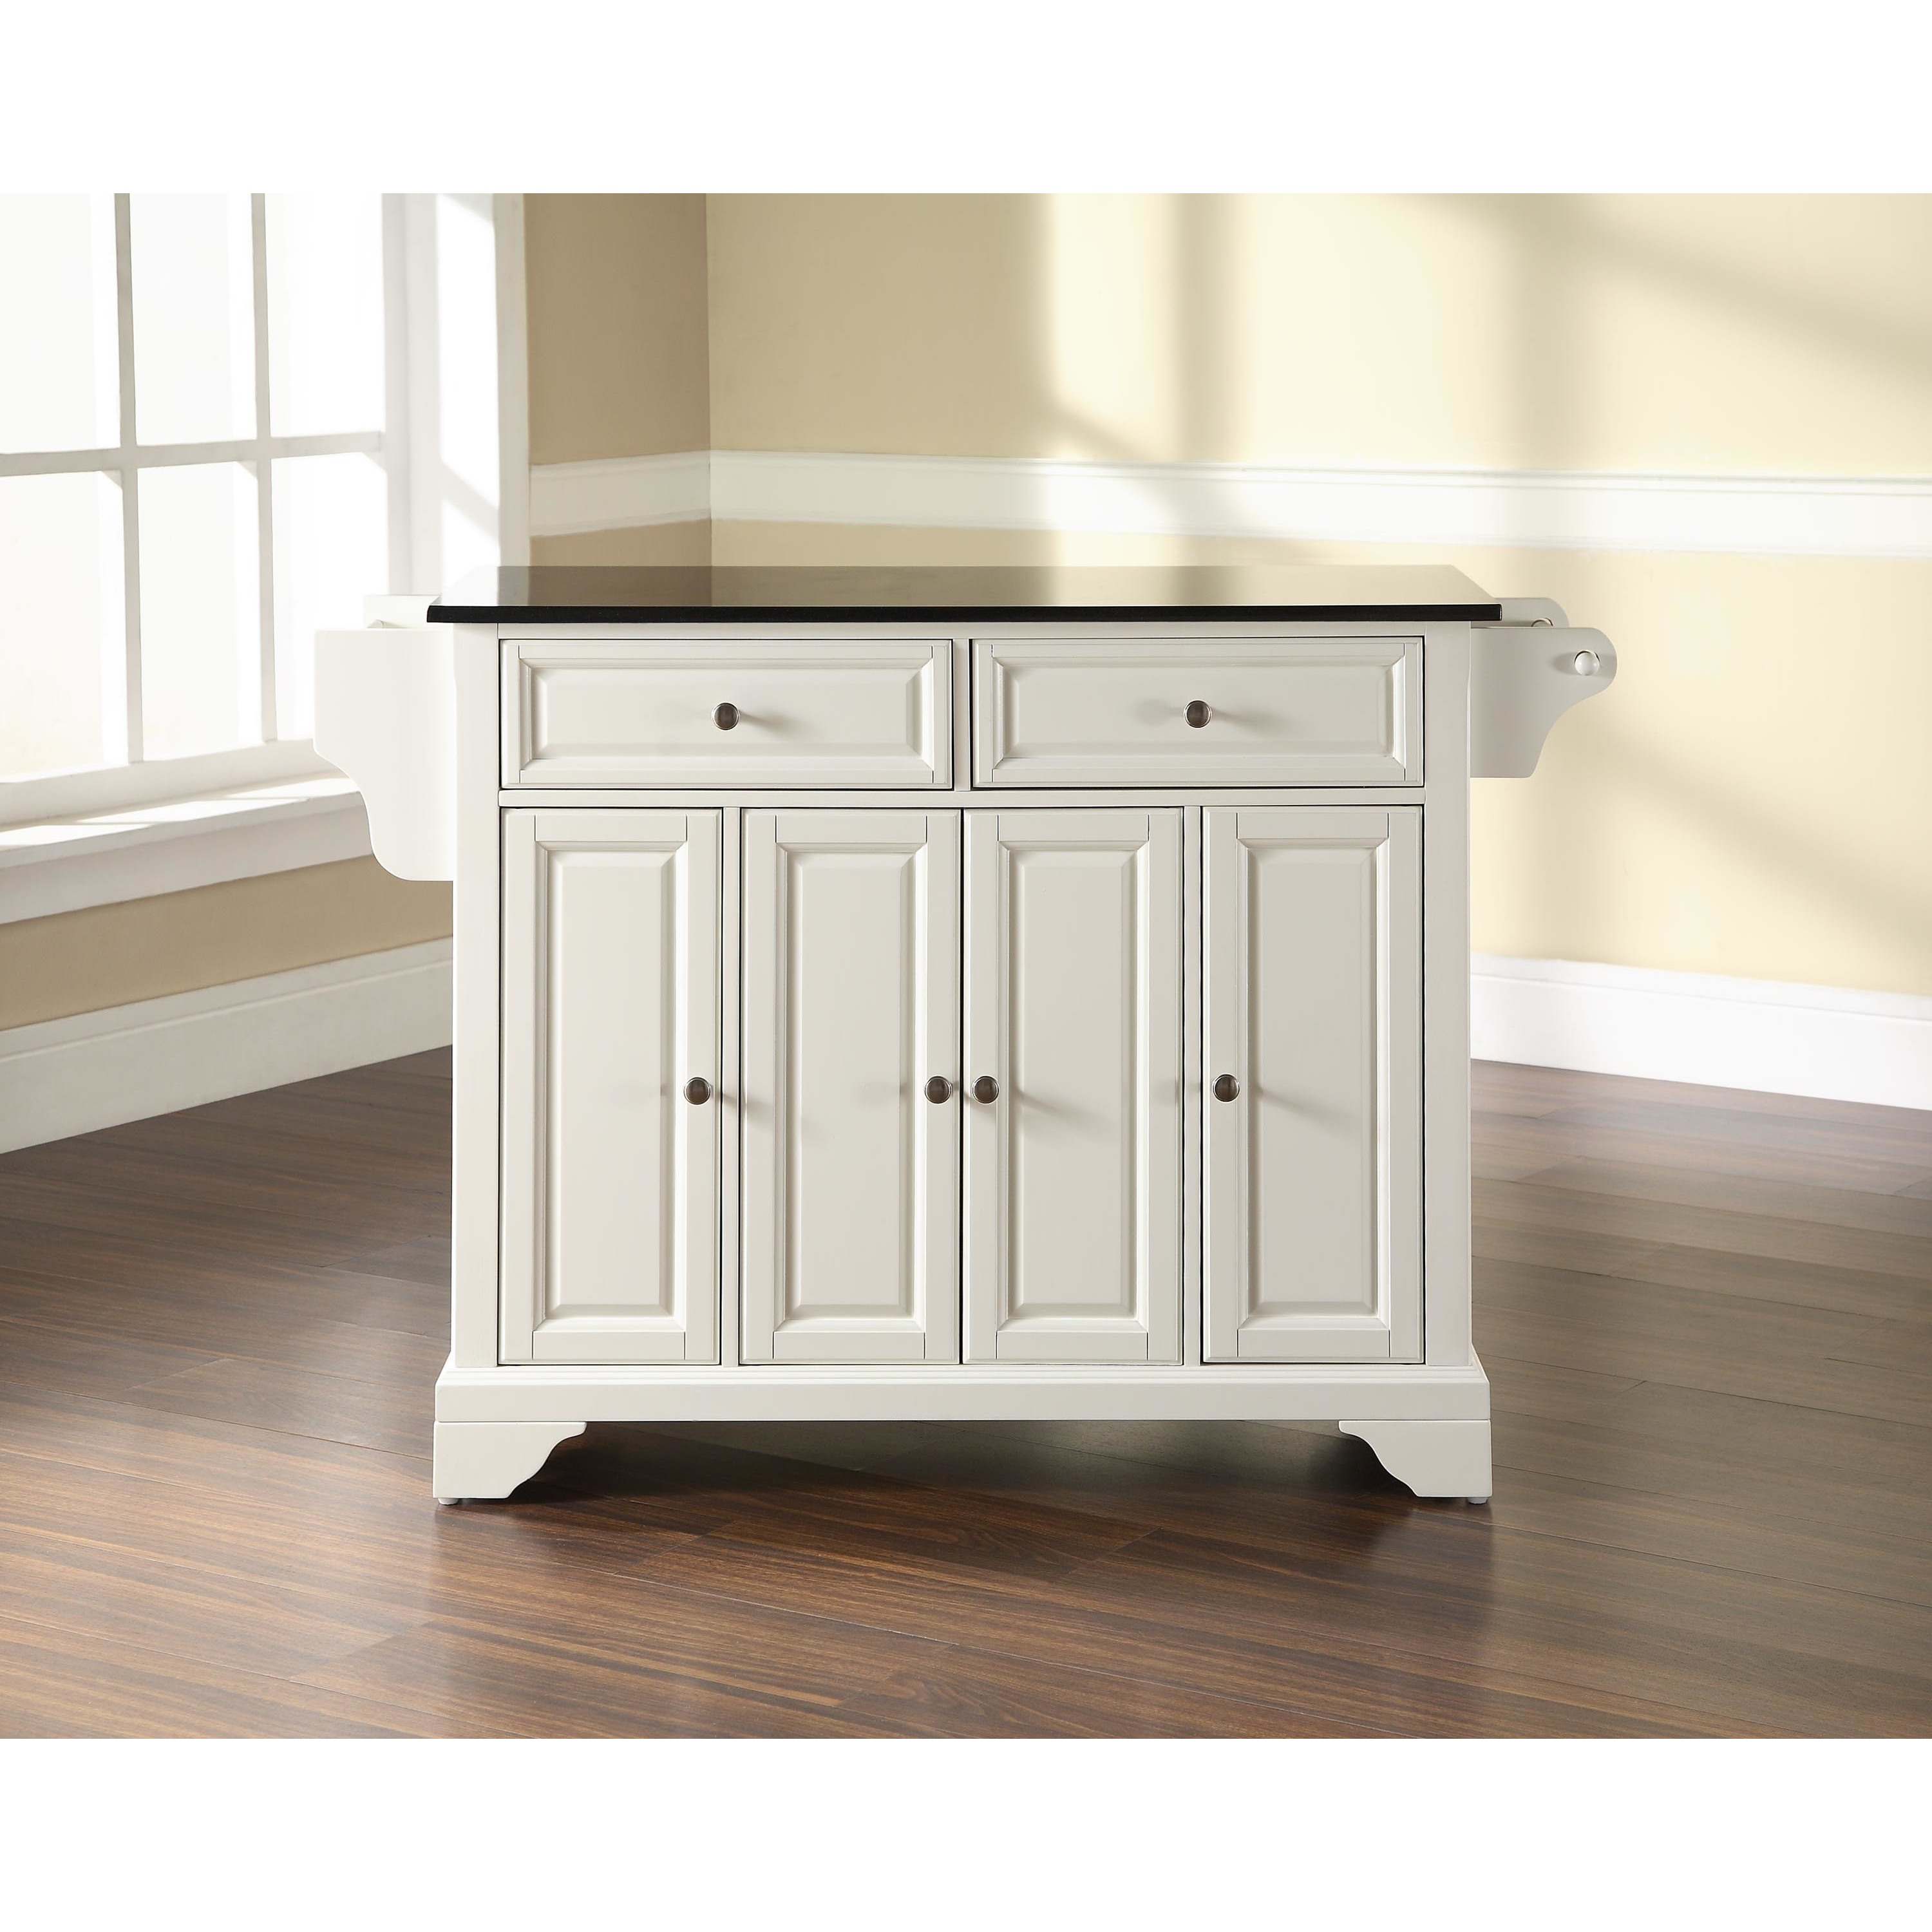 LaFayette Solid Black Granite Top Kitchen Island in White Finish